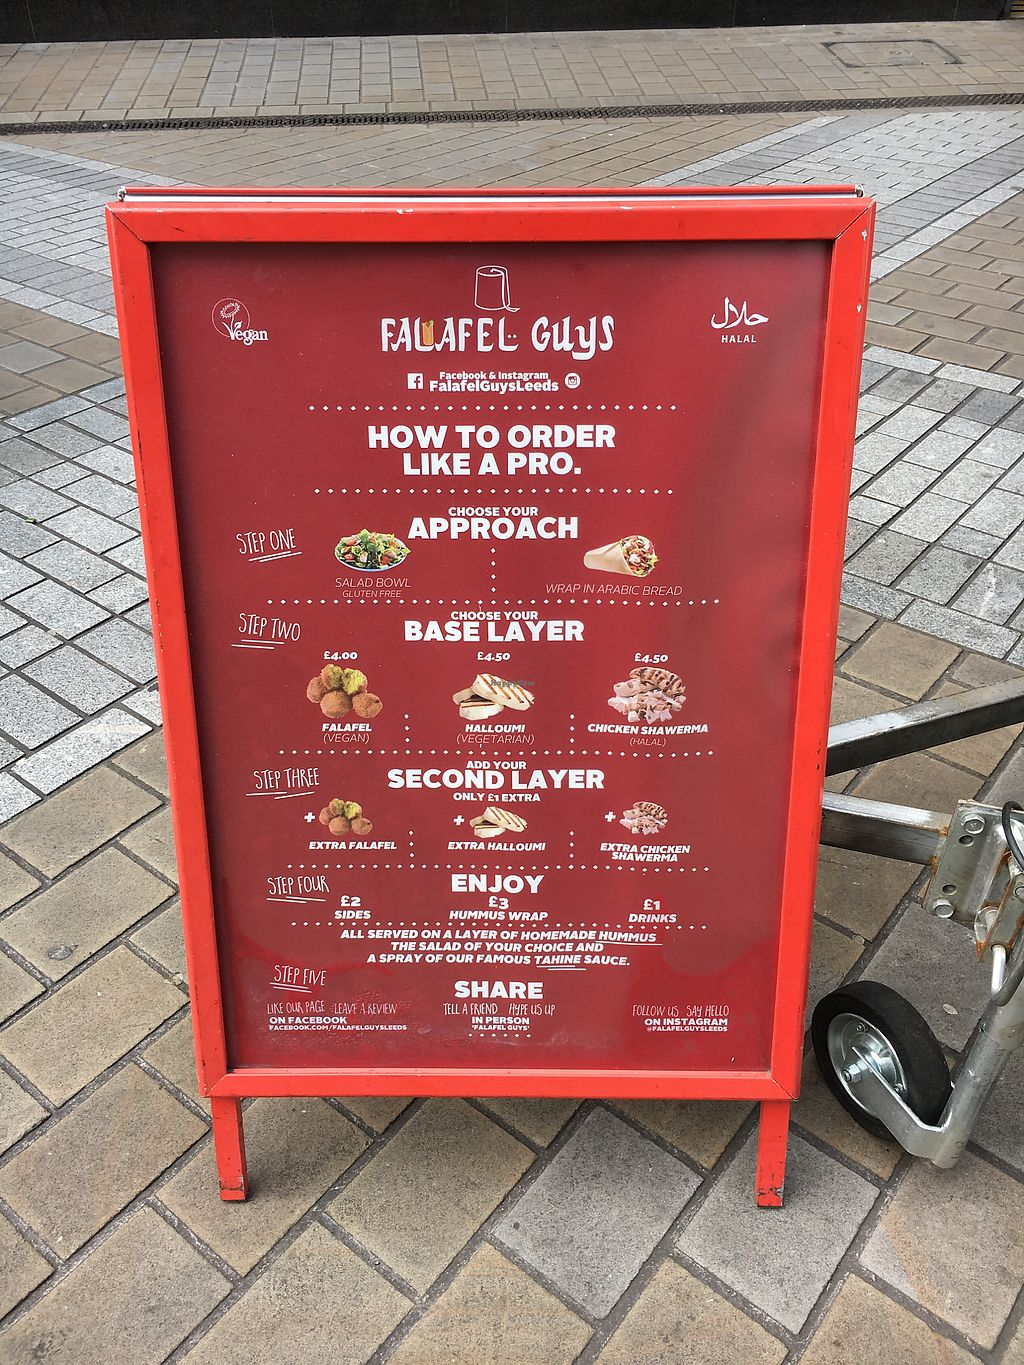 "Photo of Falafel Guys - Food Truck  by <a href=""/members/profile/hack_man"">hack_man</a> <br/>menu  <br/> August 4, 2017  - <a href='/contact/abuse/image/92914/288639'>Report</a>"